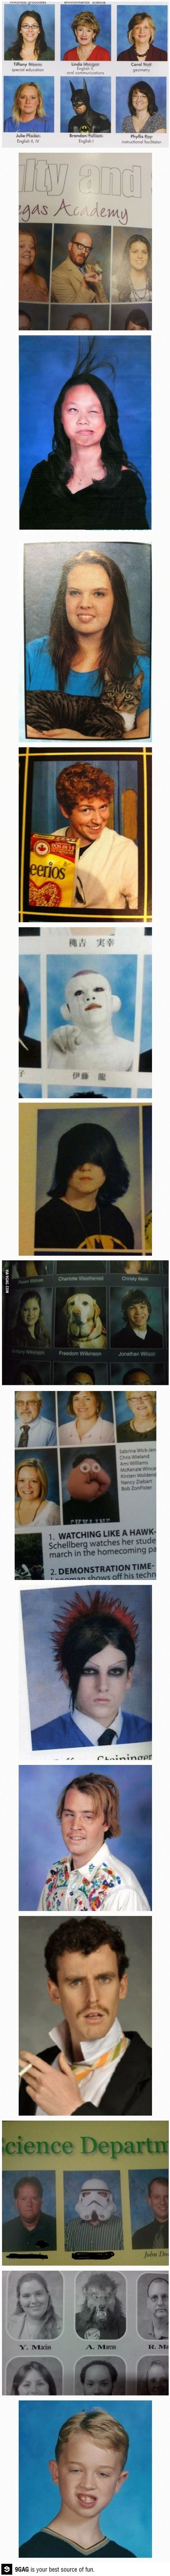 Funniest yearbook photos (I wish I had thought of something like this!)  =)